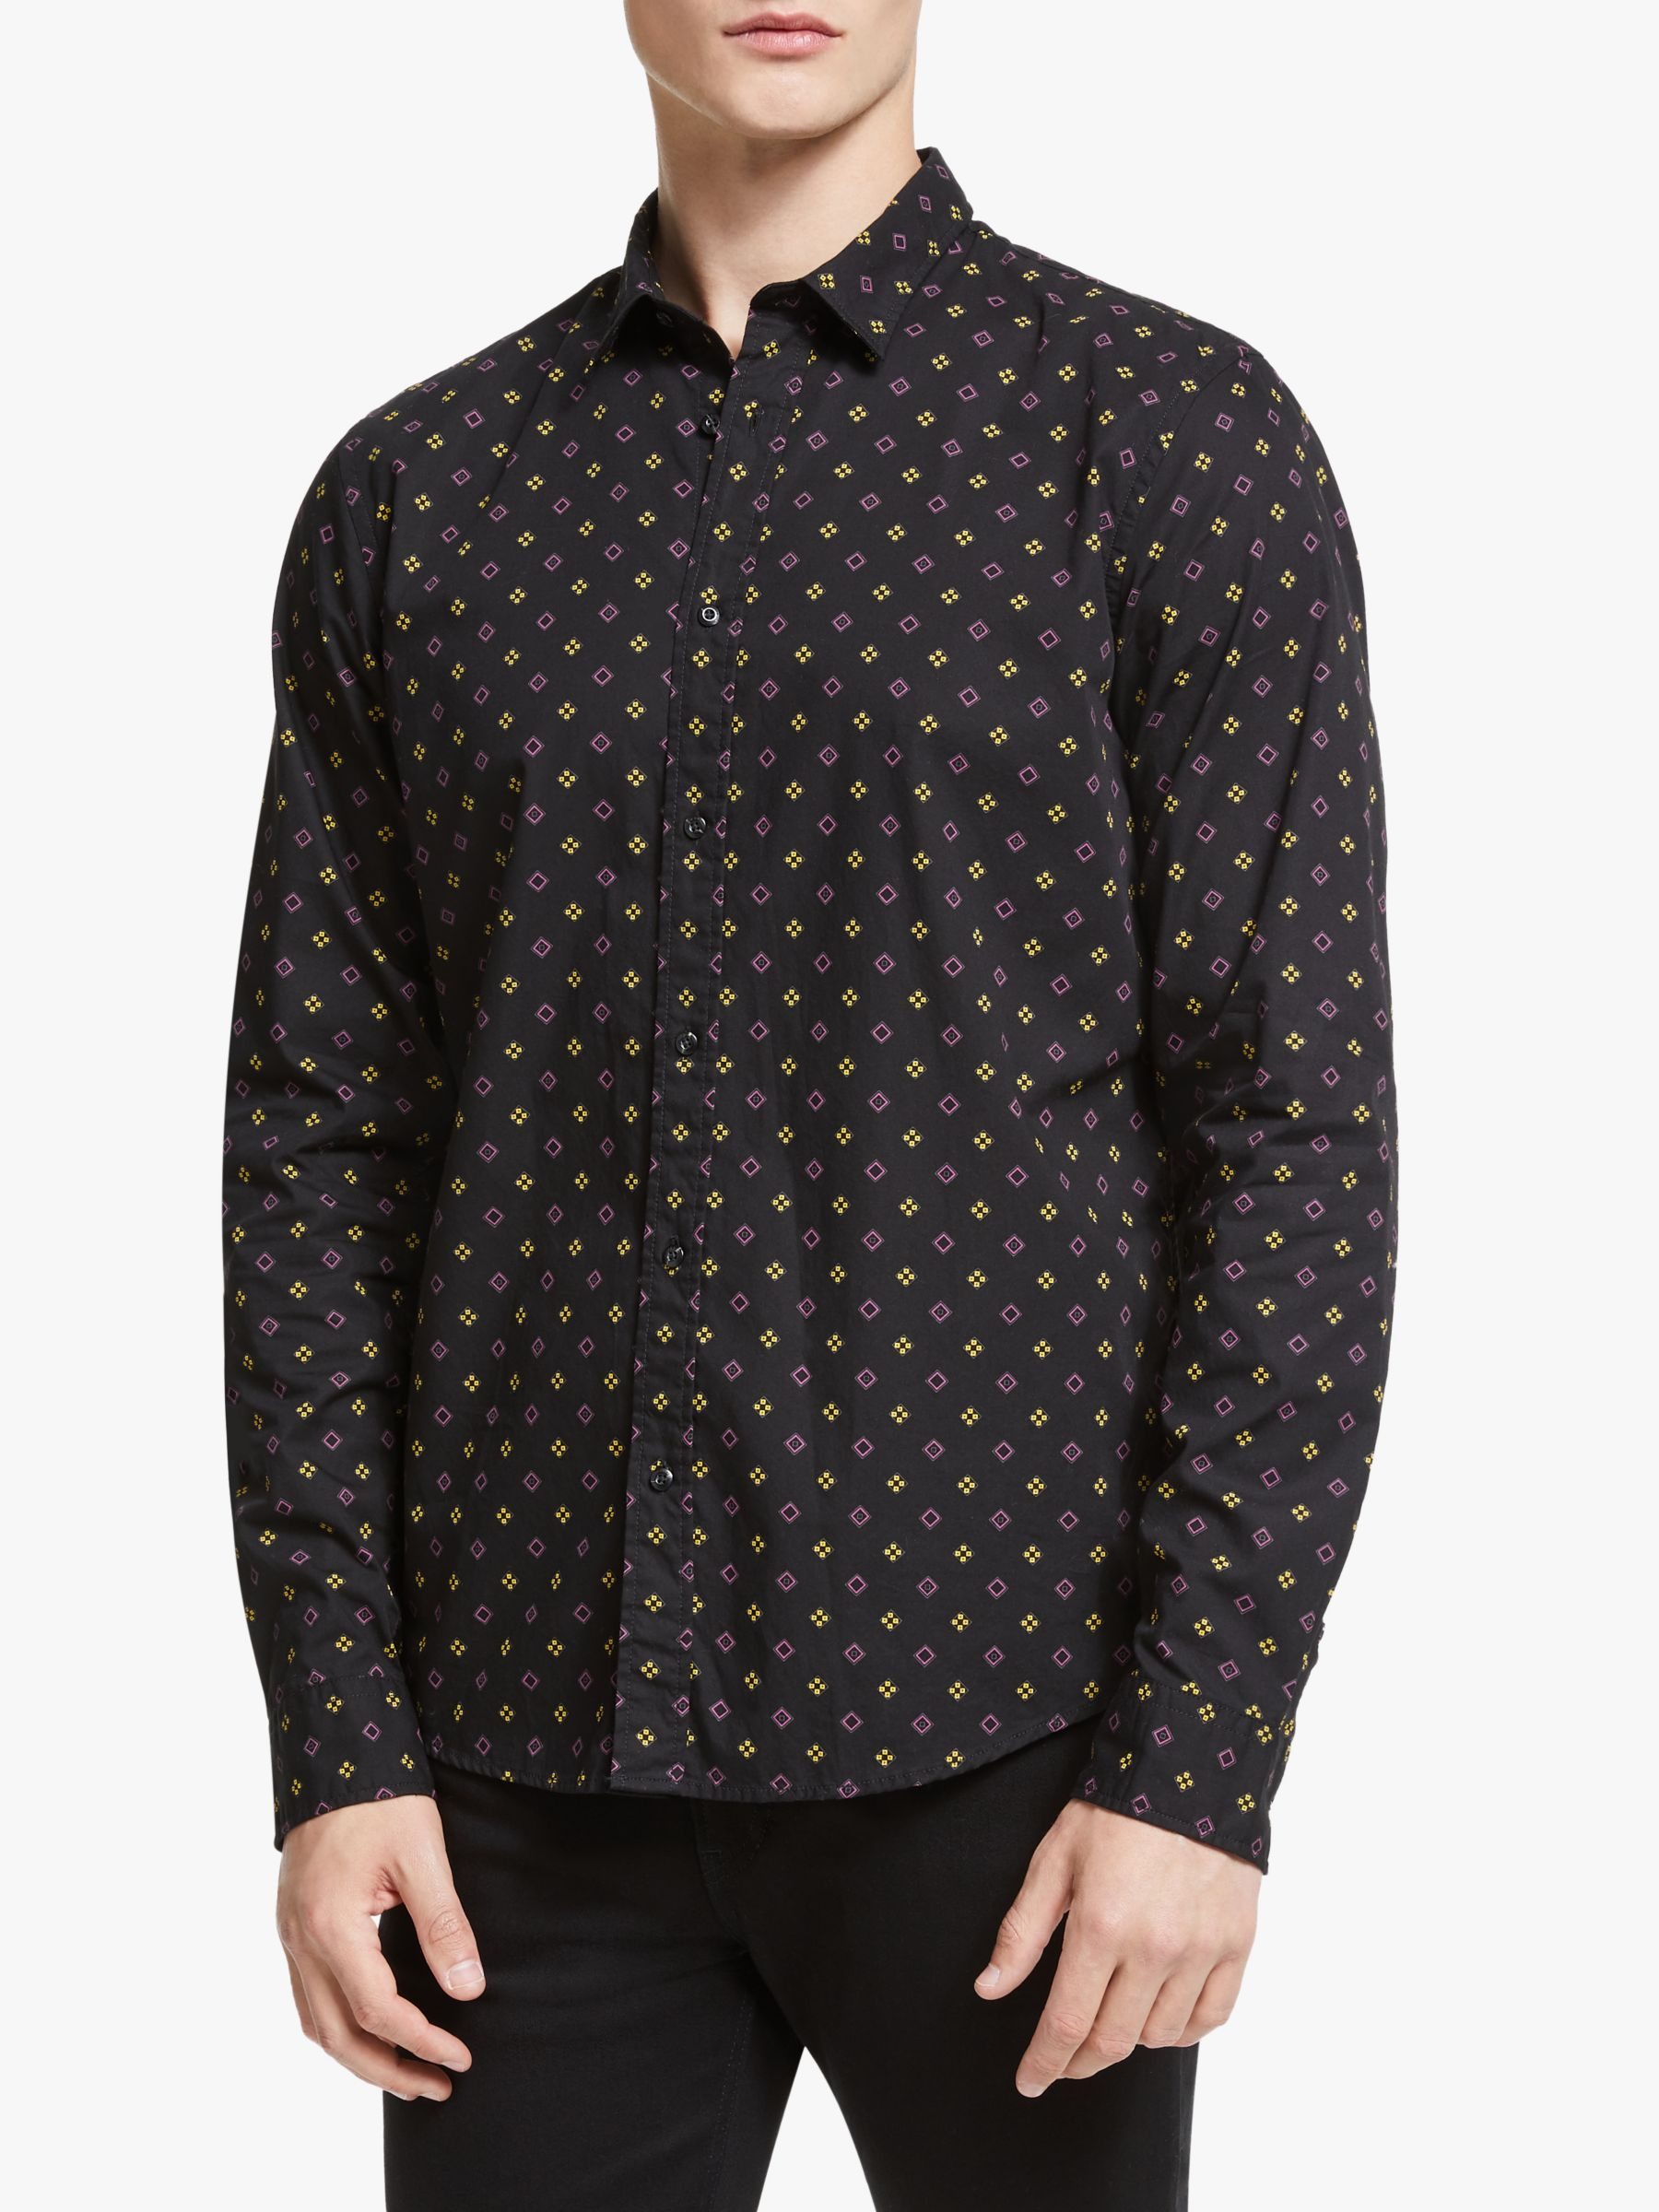 Scotch & Soda Scotch & Soda Geo Print Shirt, Black